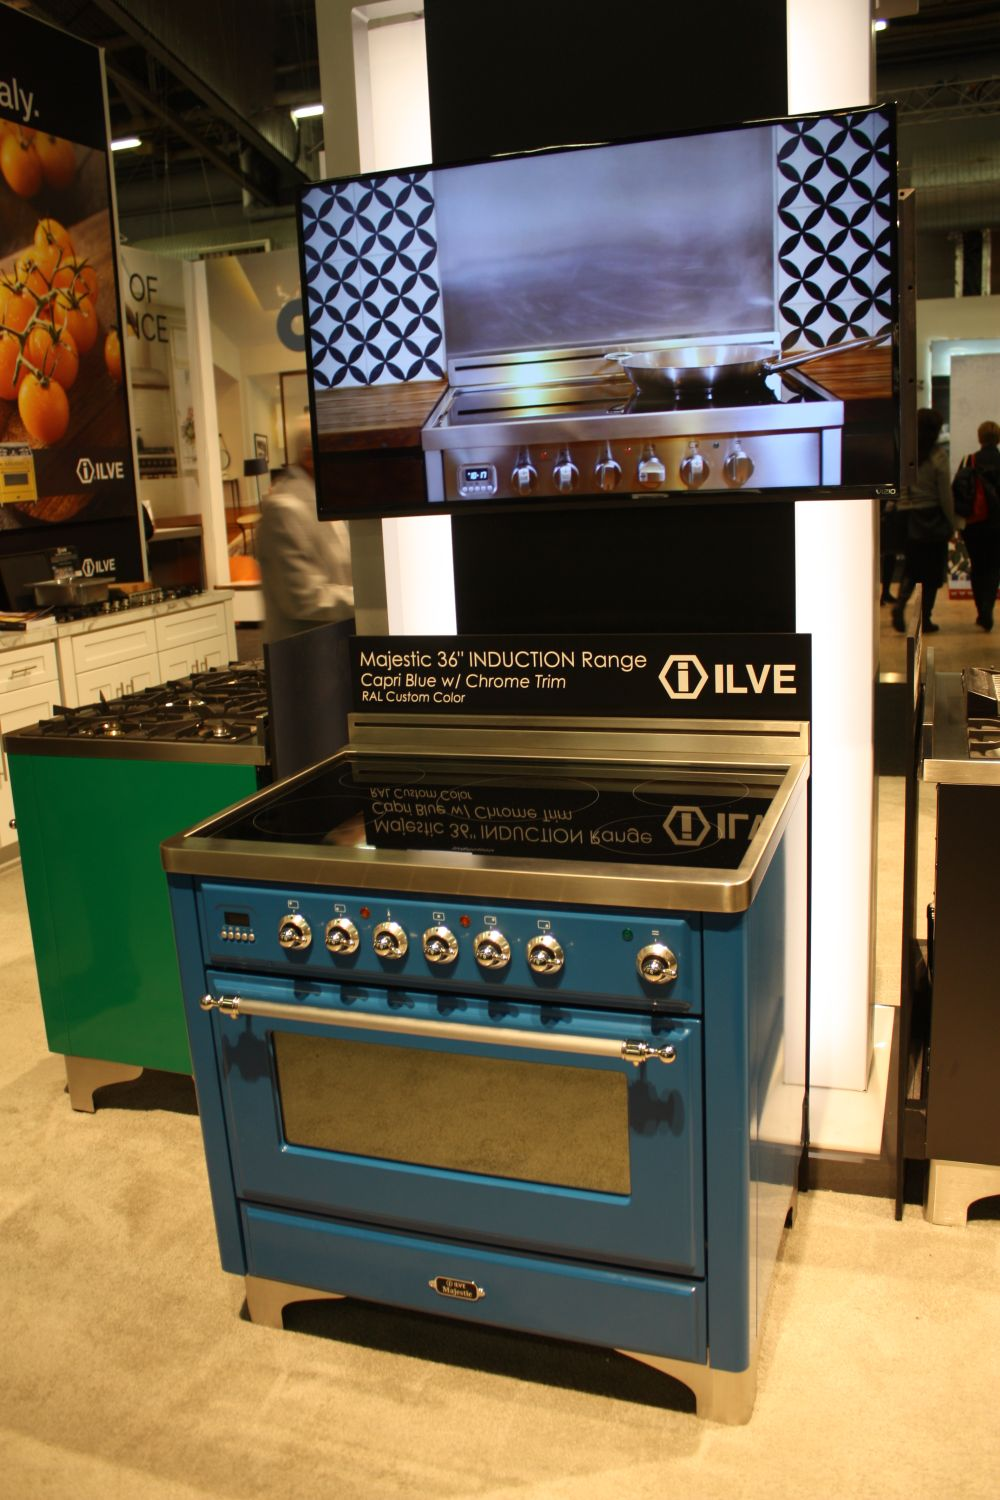 A lot of companies are offering kitchen appliances inspired by the retro and classical styles but updated for the modern home